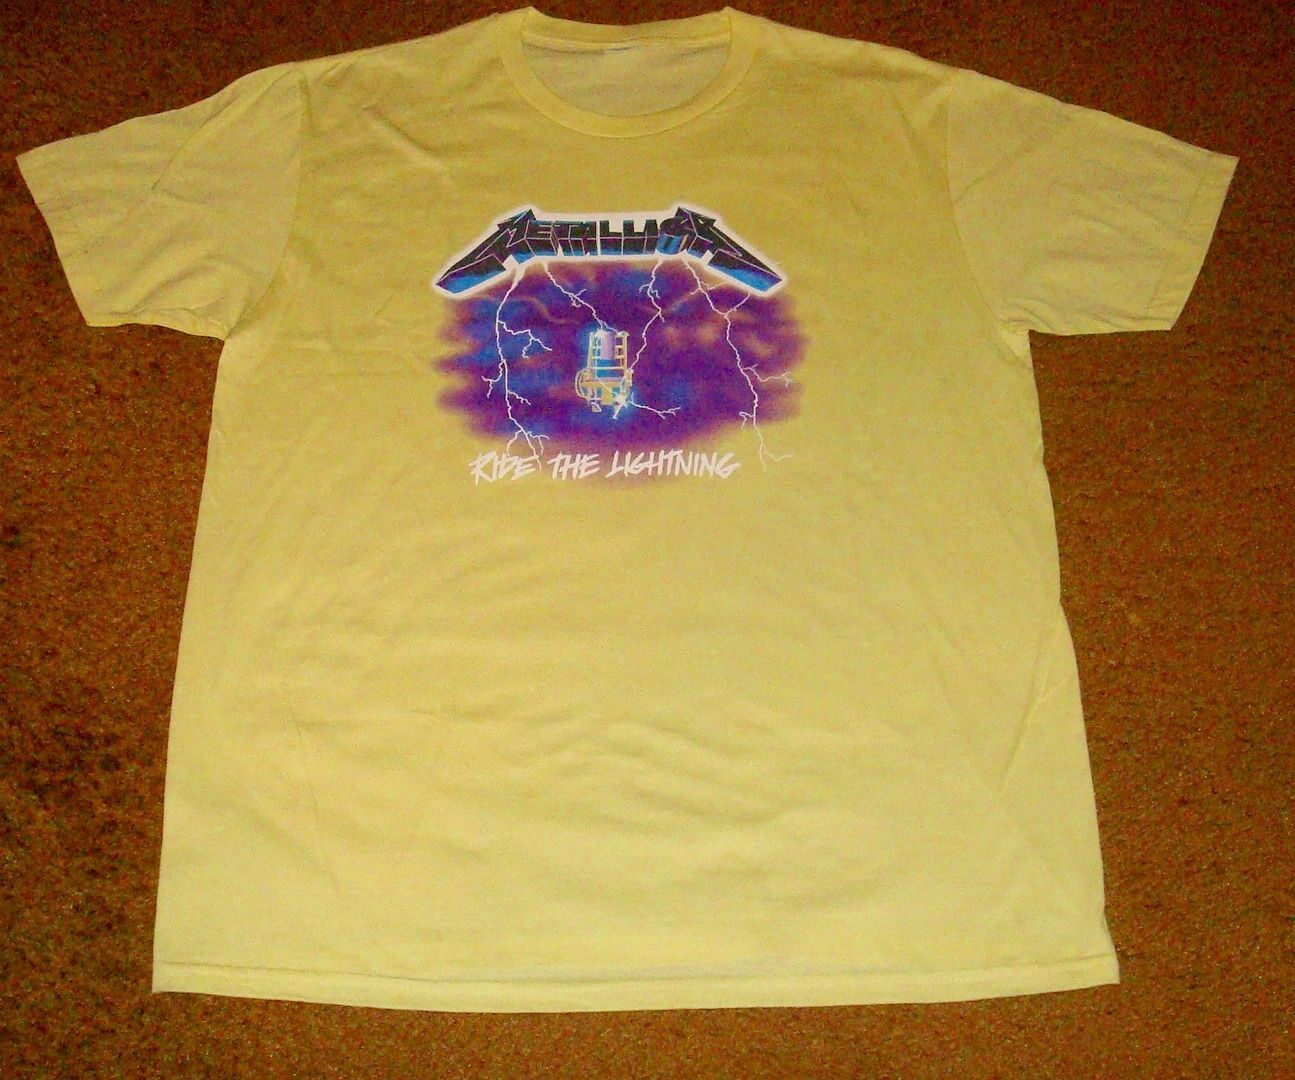 Primary image for METALLICA RIDE THE LIGHTNING T-SHIRT     SIZE LARGE!   BRAND NEW!